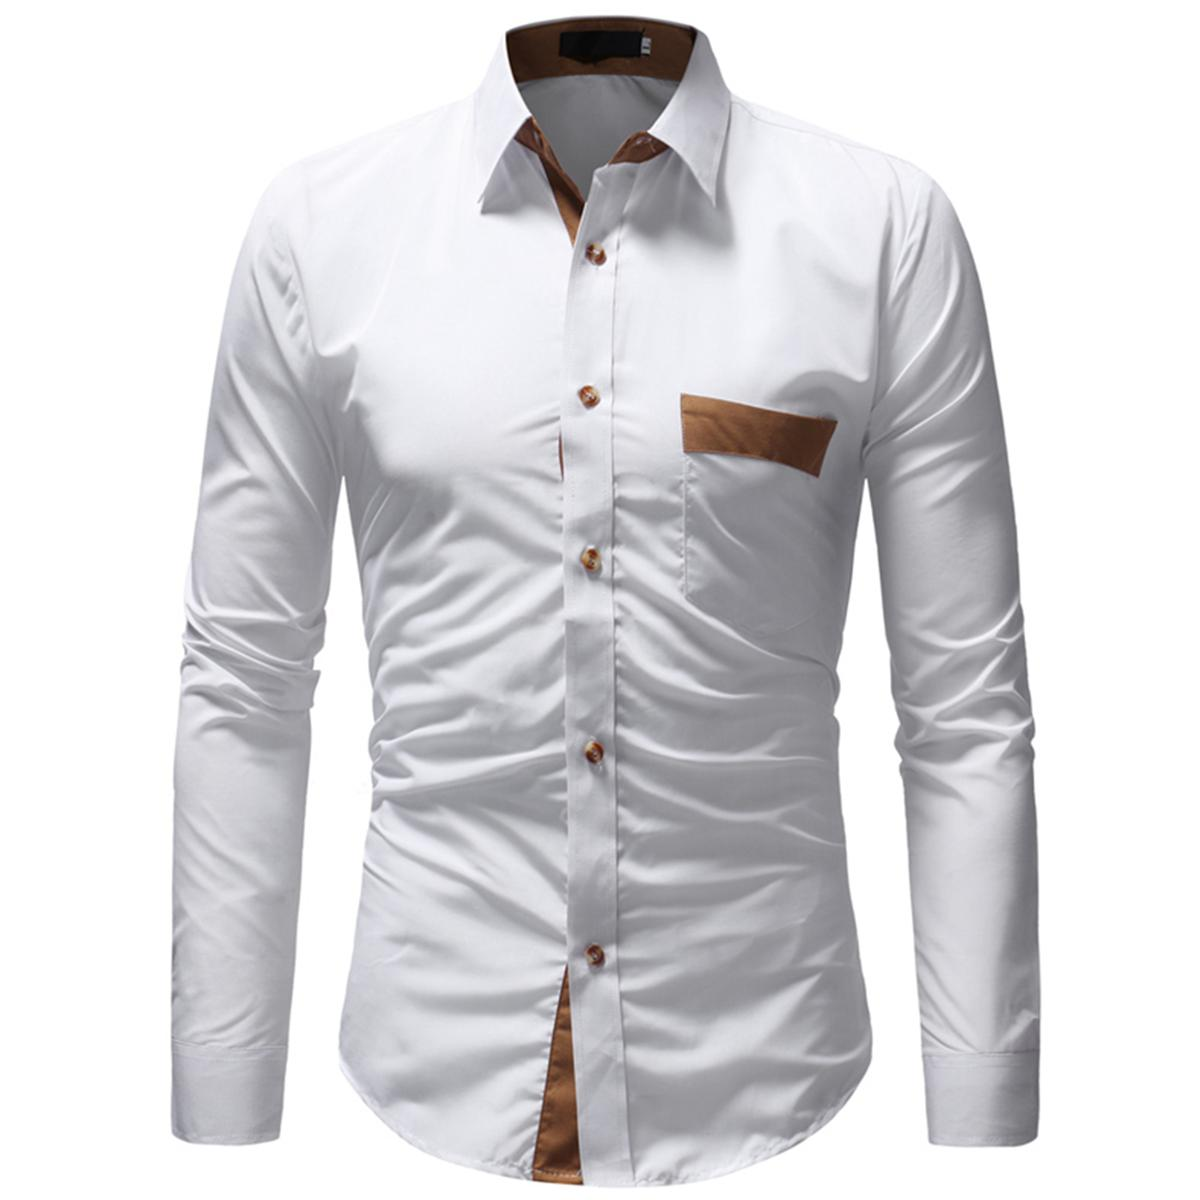 Hypnotic White Colored Casual Wear Pure Cotton Shirt